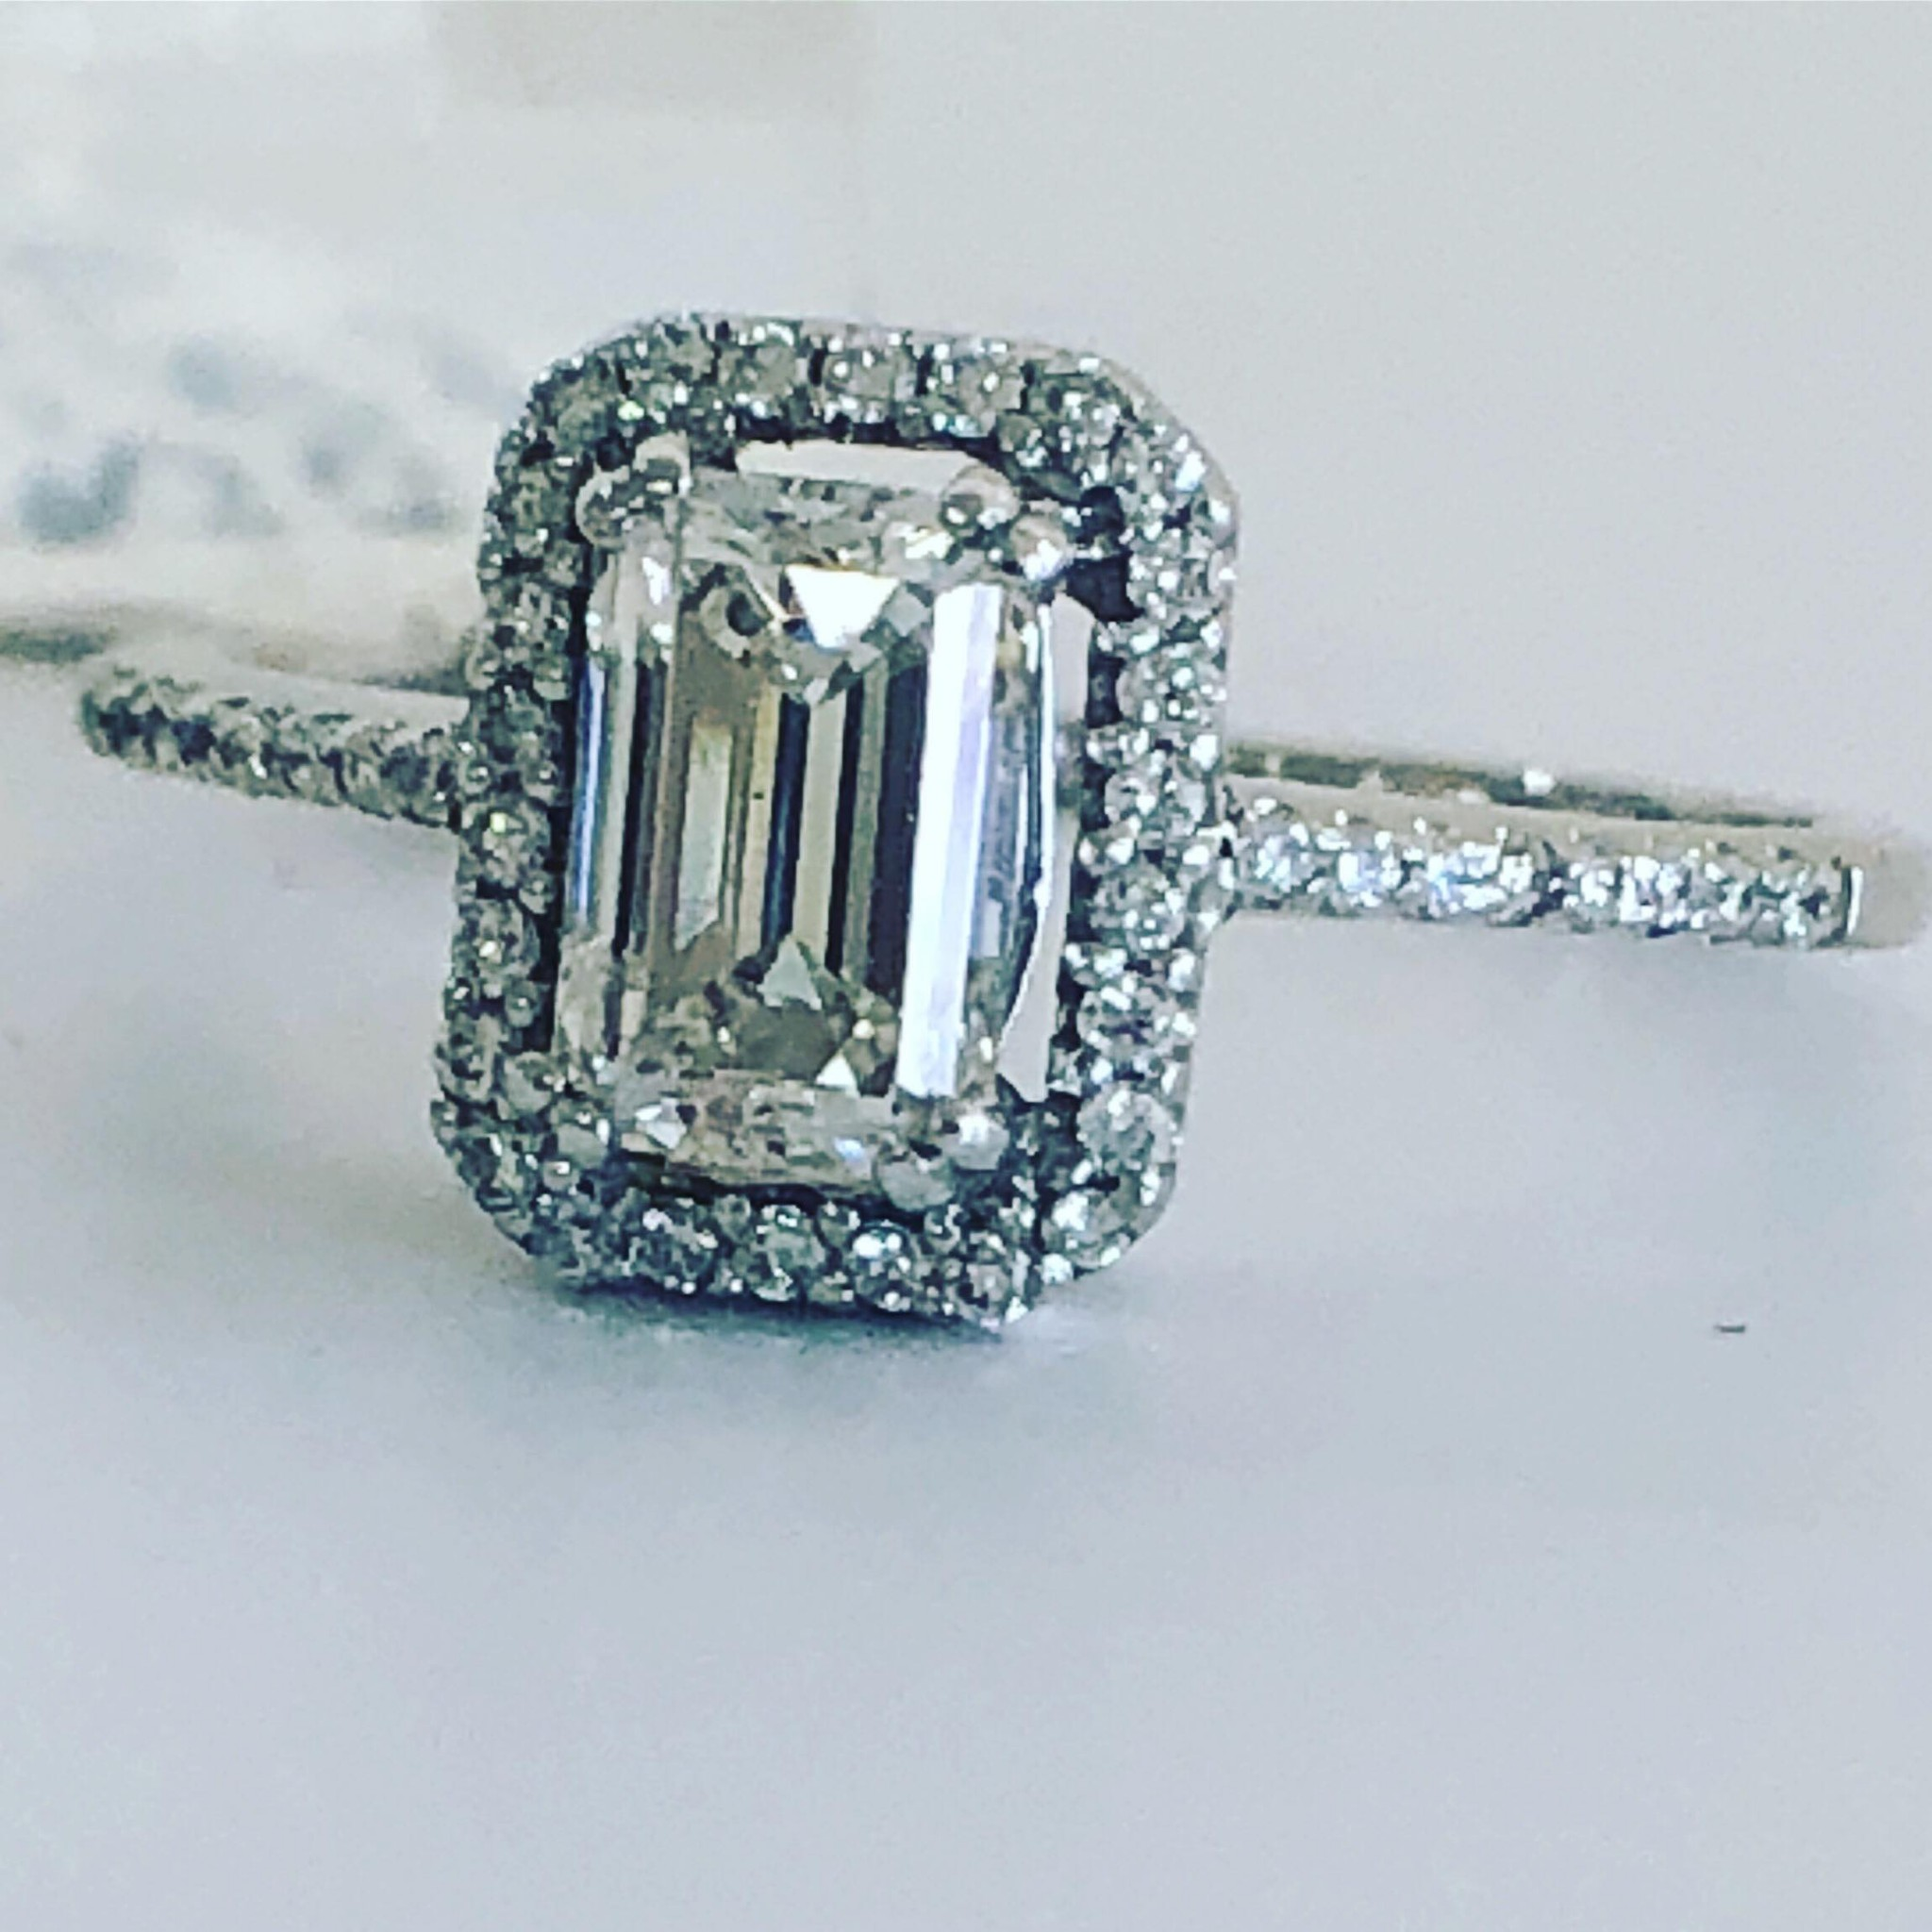 sotherbys emerald cut diamon rings by crop subsampling article diamond upscale model the jewellery false scale bridal ultimate s editor sotheby engagement auctioned